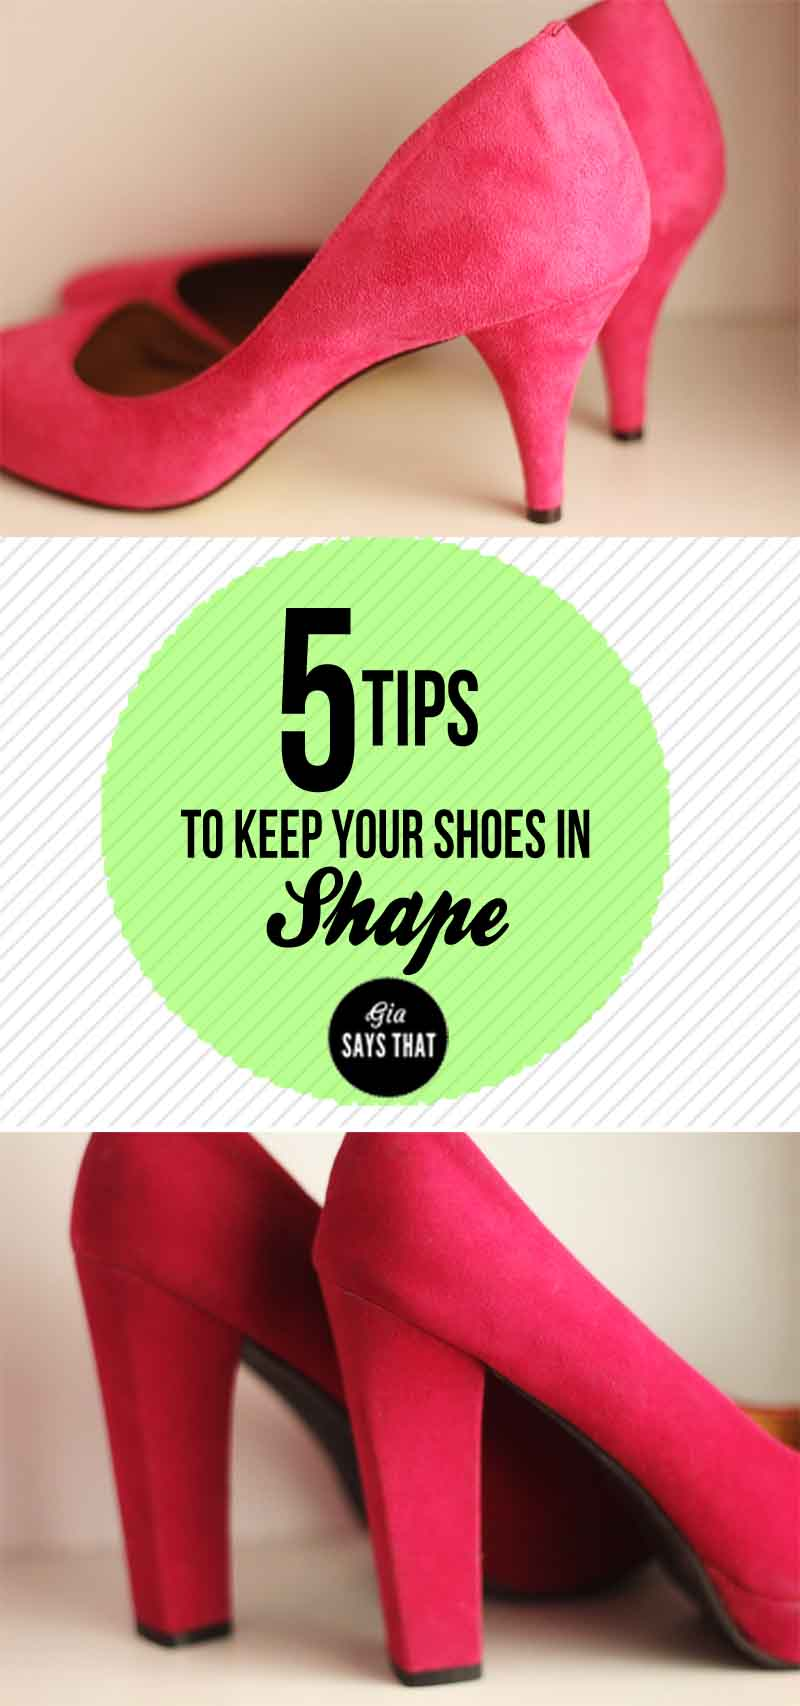 5 TIPS TO KEEP YOUR SHOES IN SHAPE